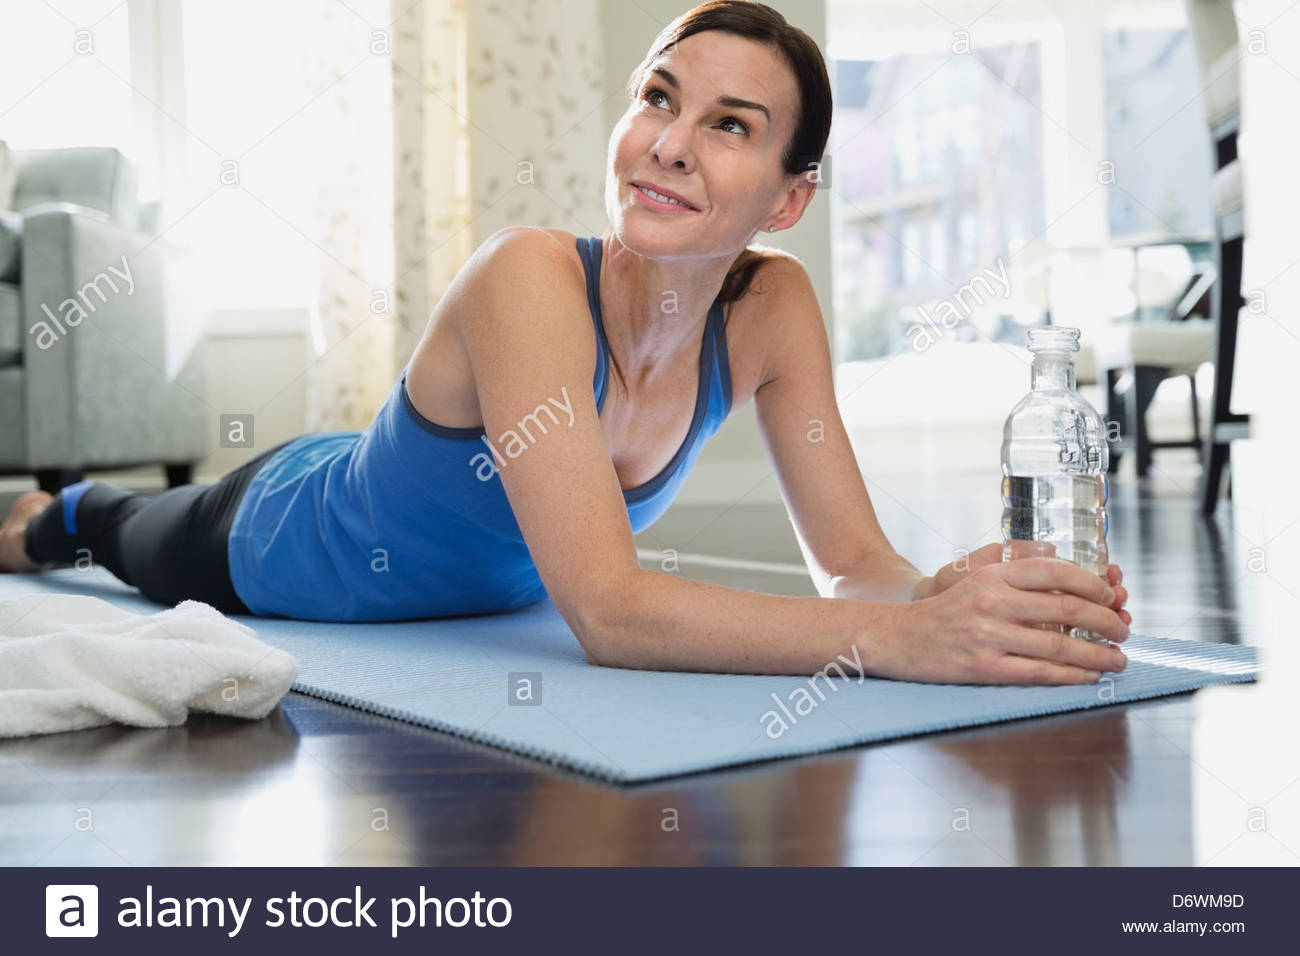 Thoughtful happy mature woman resting on exercise mat - Stock Image